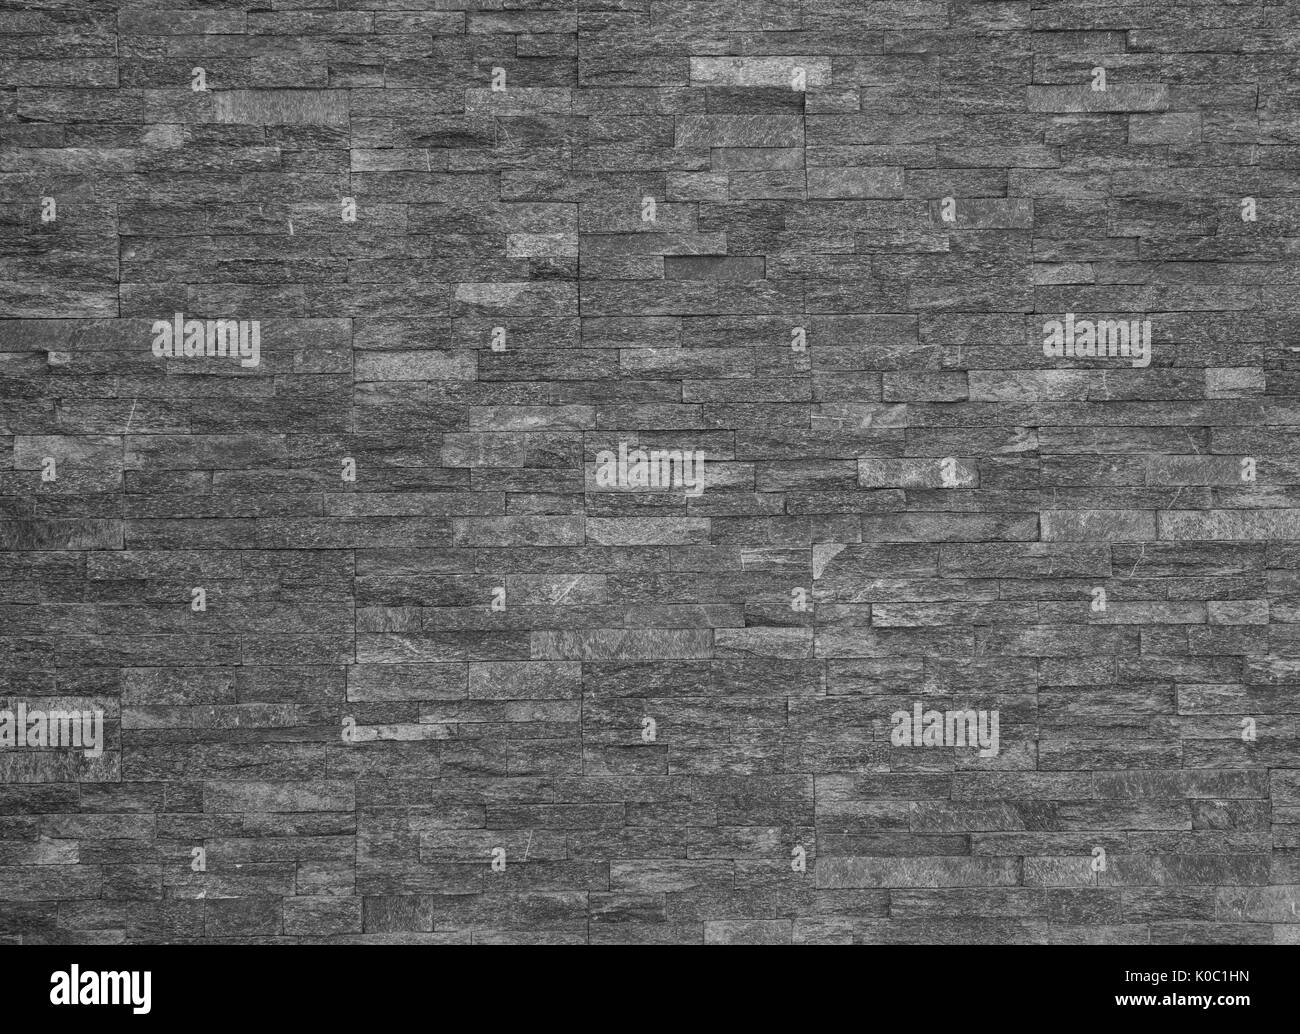 Black and white texture background - Stock Image